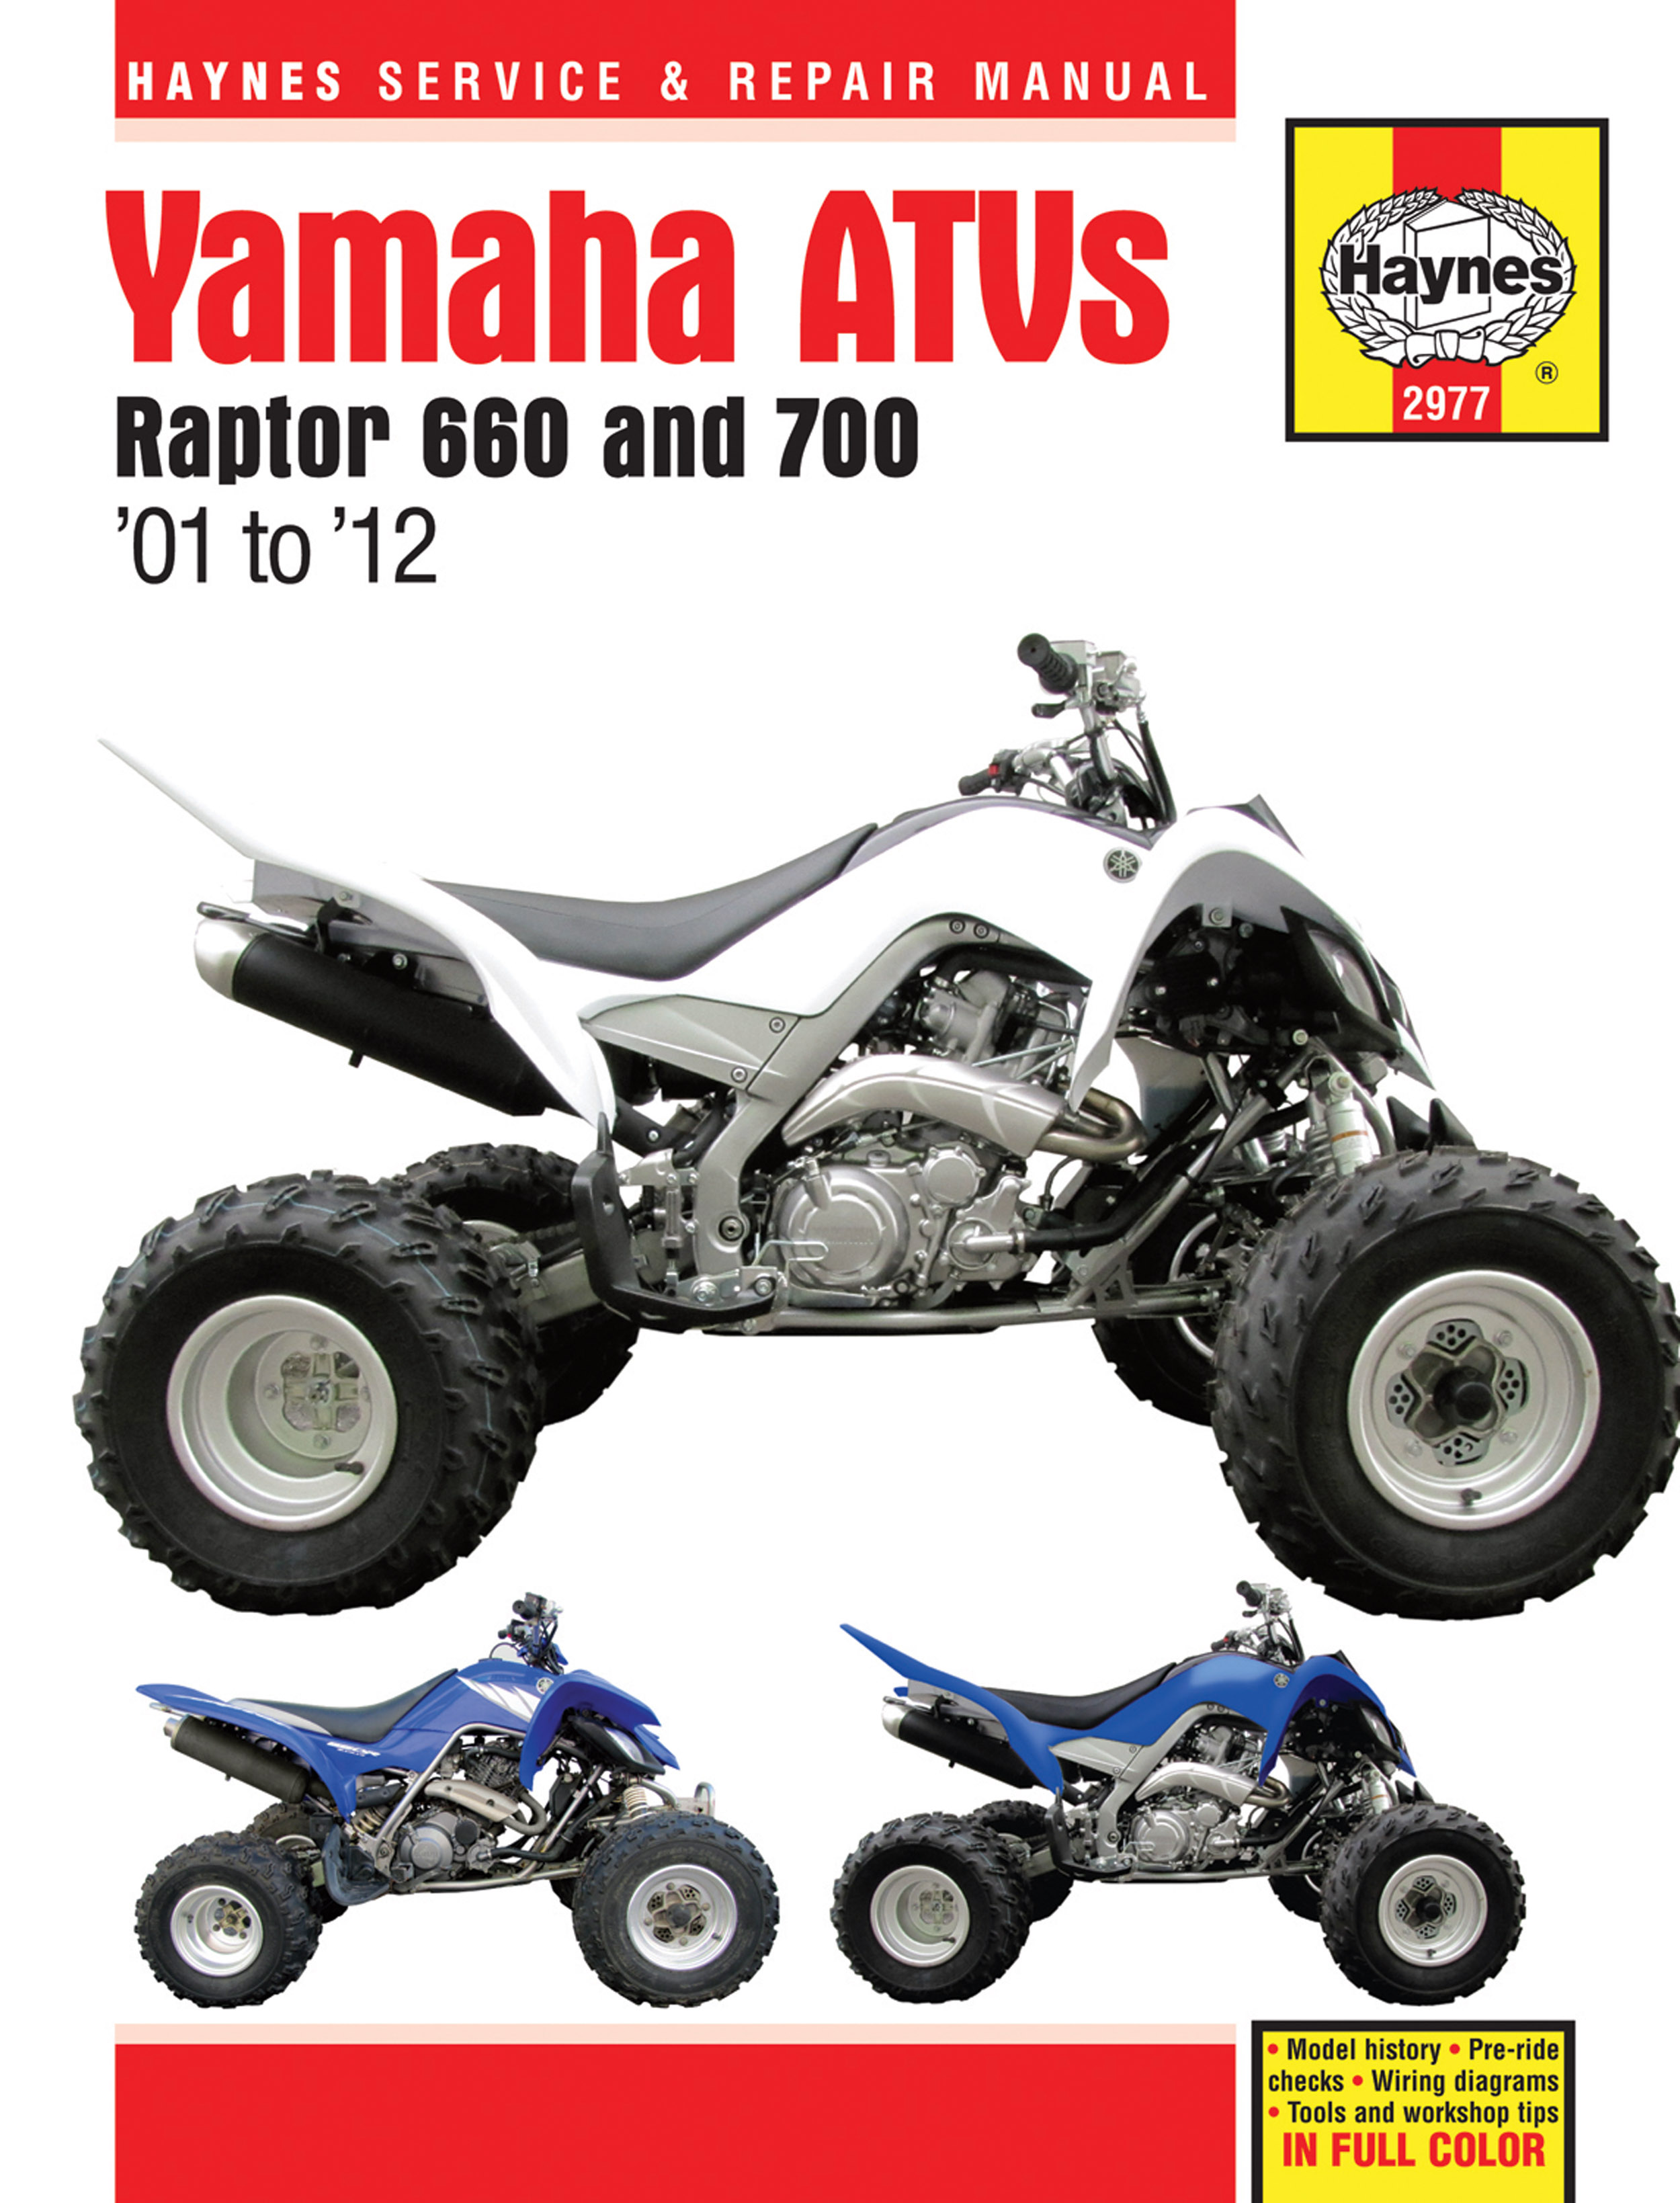 Enlarge Yamaha Raptor 660 (01-05) ...